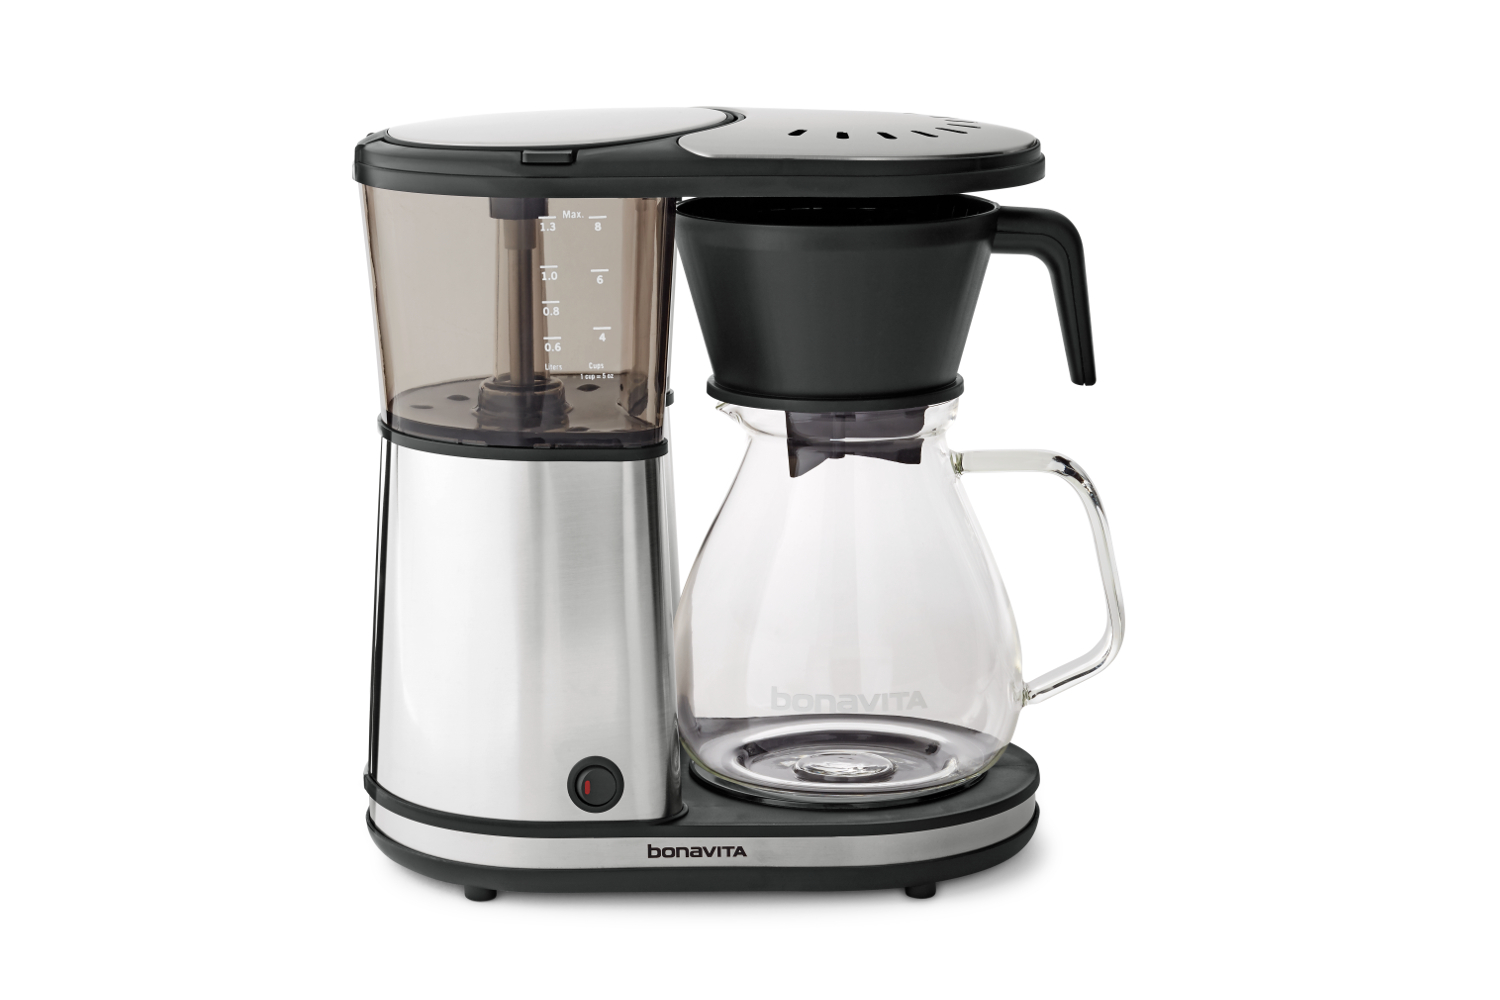 Bonavita 8 Cup Glass Carafe Coffee Brewer w/Warming Plate